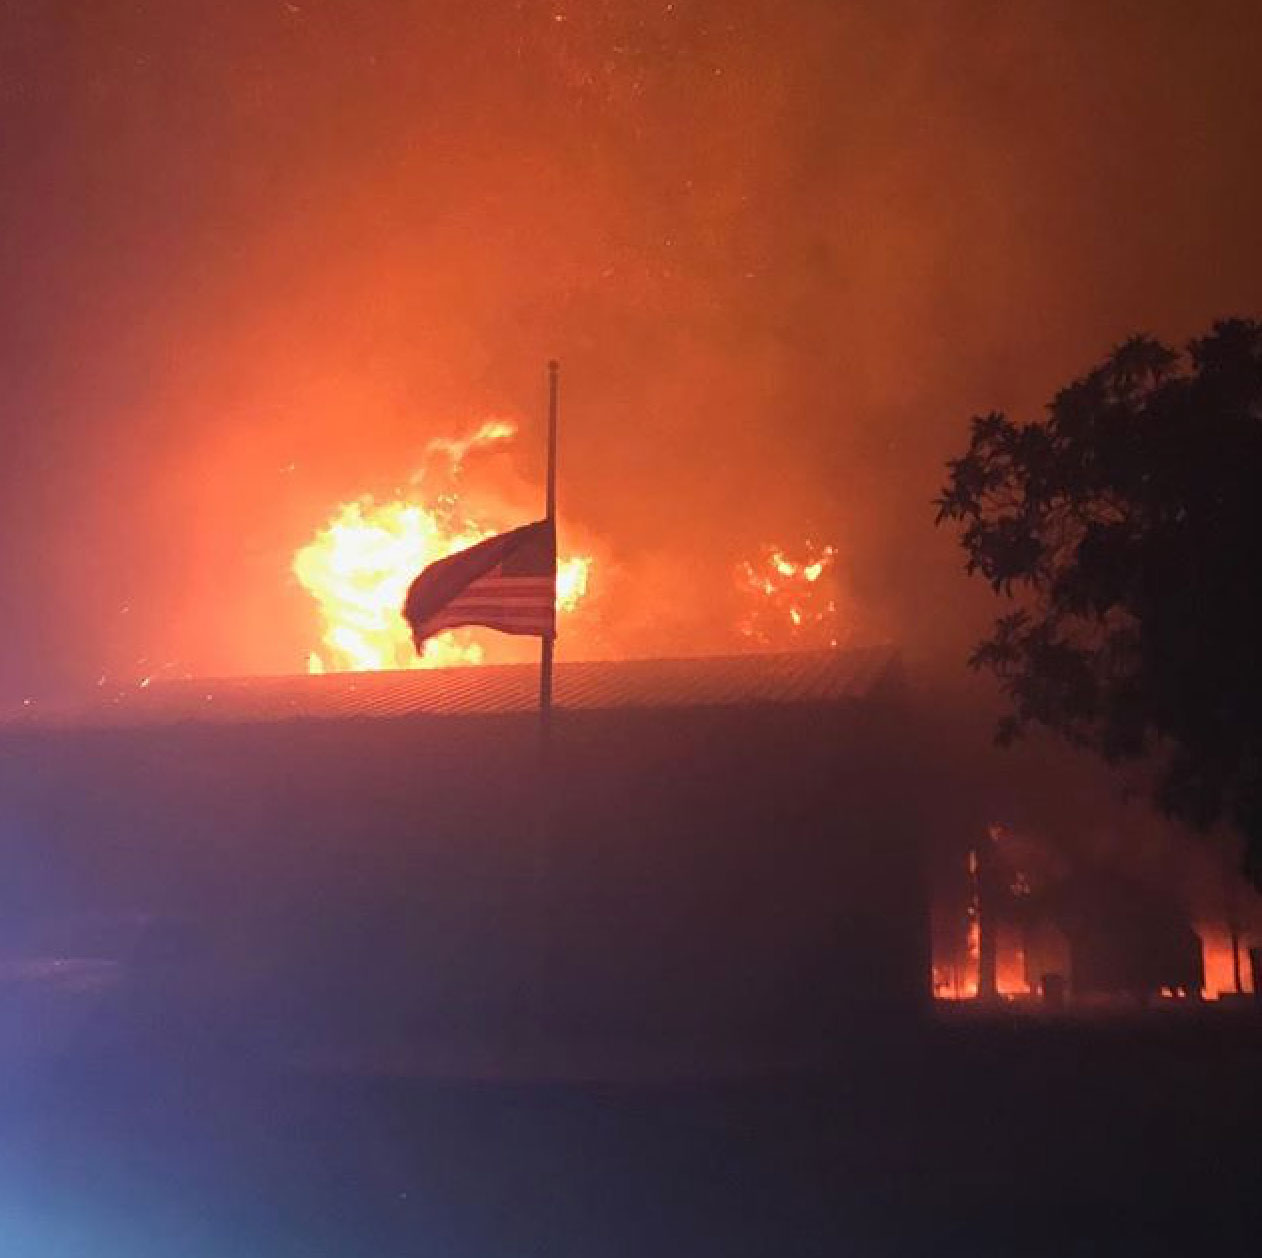 "<div class=""meta image-caption""><div class=""origin-logo origin-image none""><span>none</span></div><span class=""caption-text"">An American flag flies as the Tubbs fire burns behind it. (local55oakland/Instagram)</span></div>"